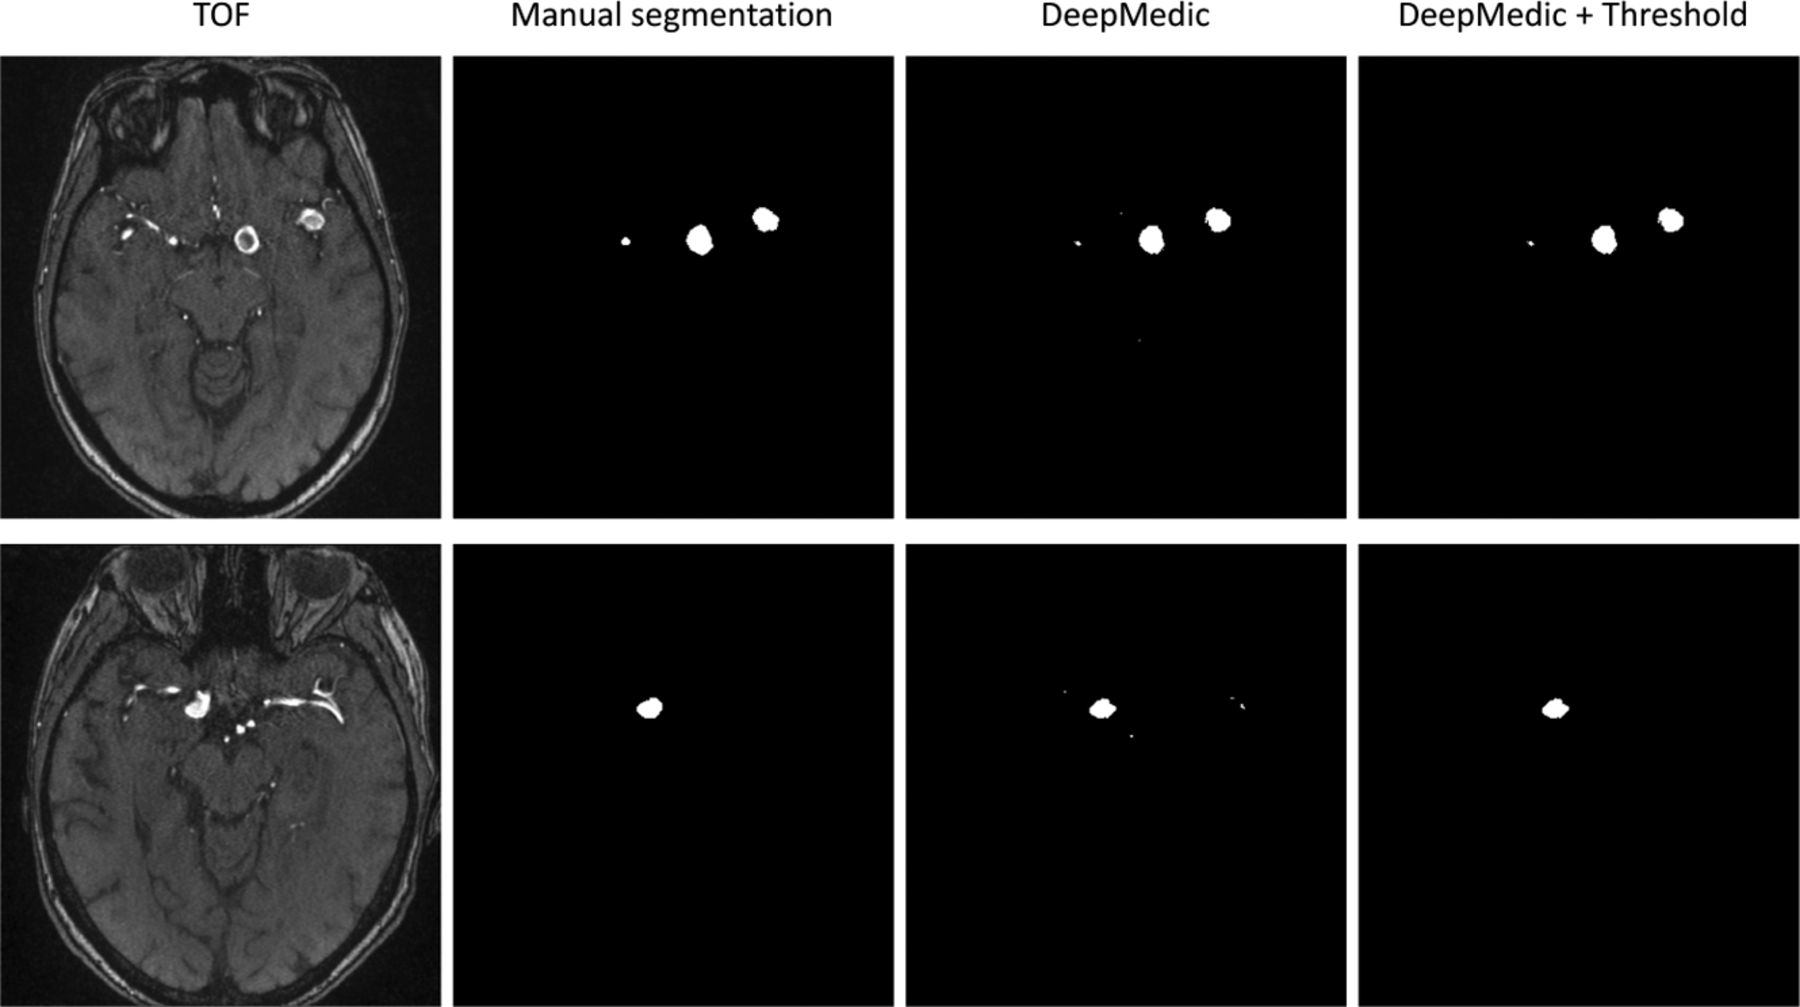 Deep Learning–Based Detection of Intracranial Aneurysms in 3D TOF